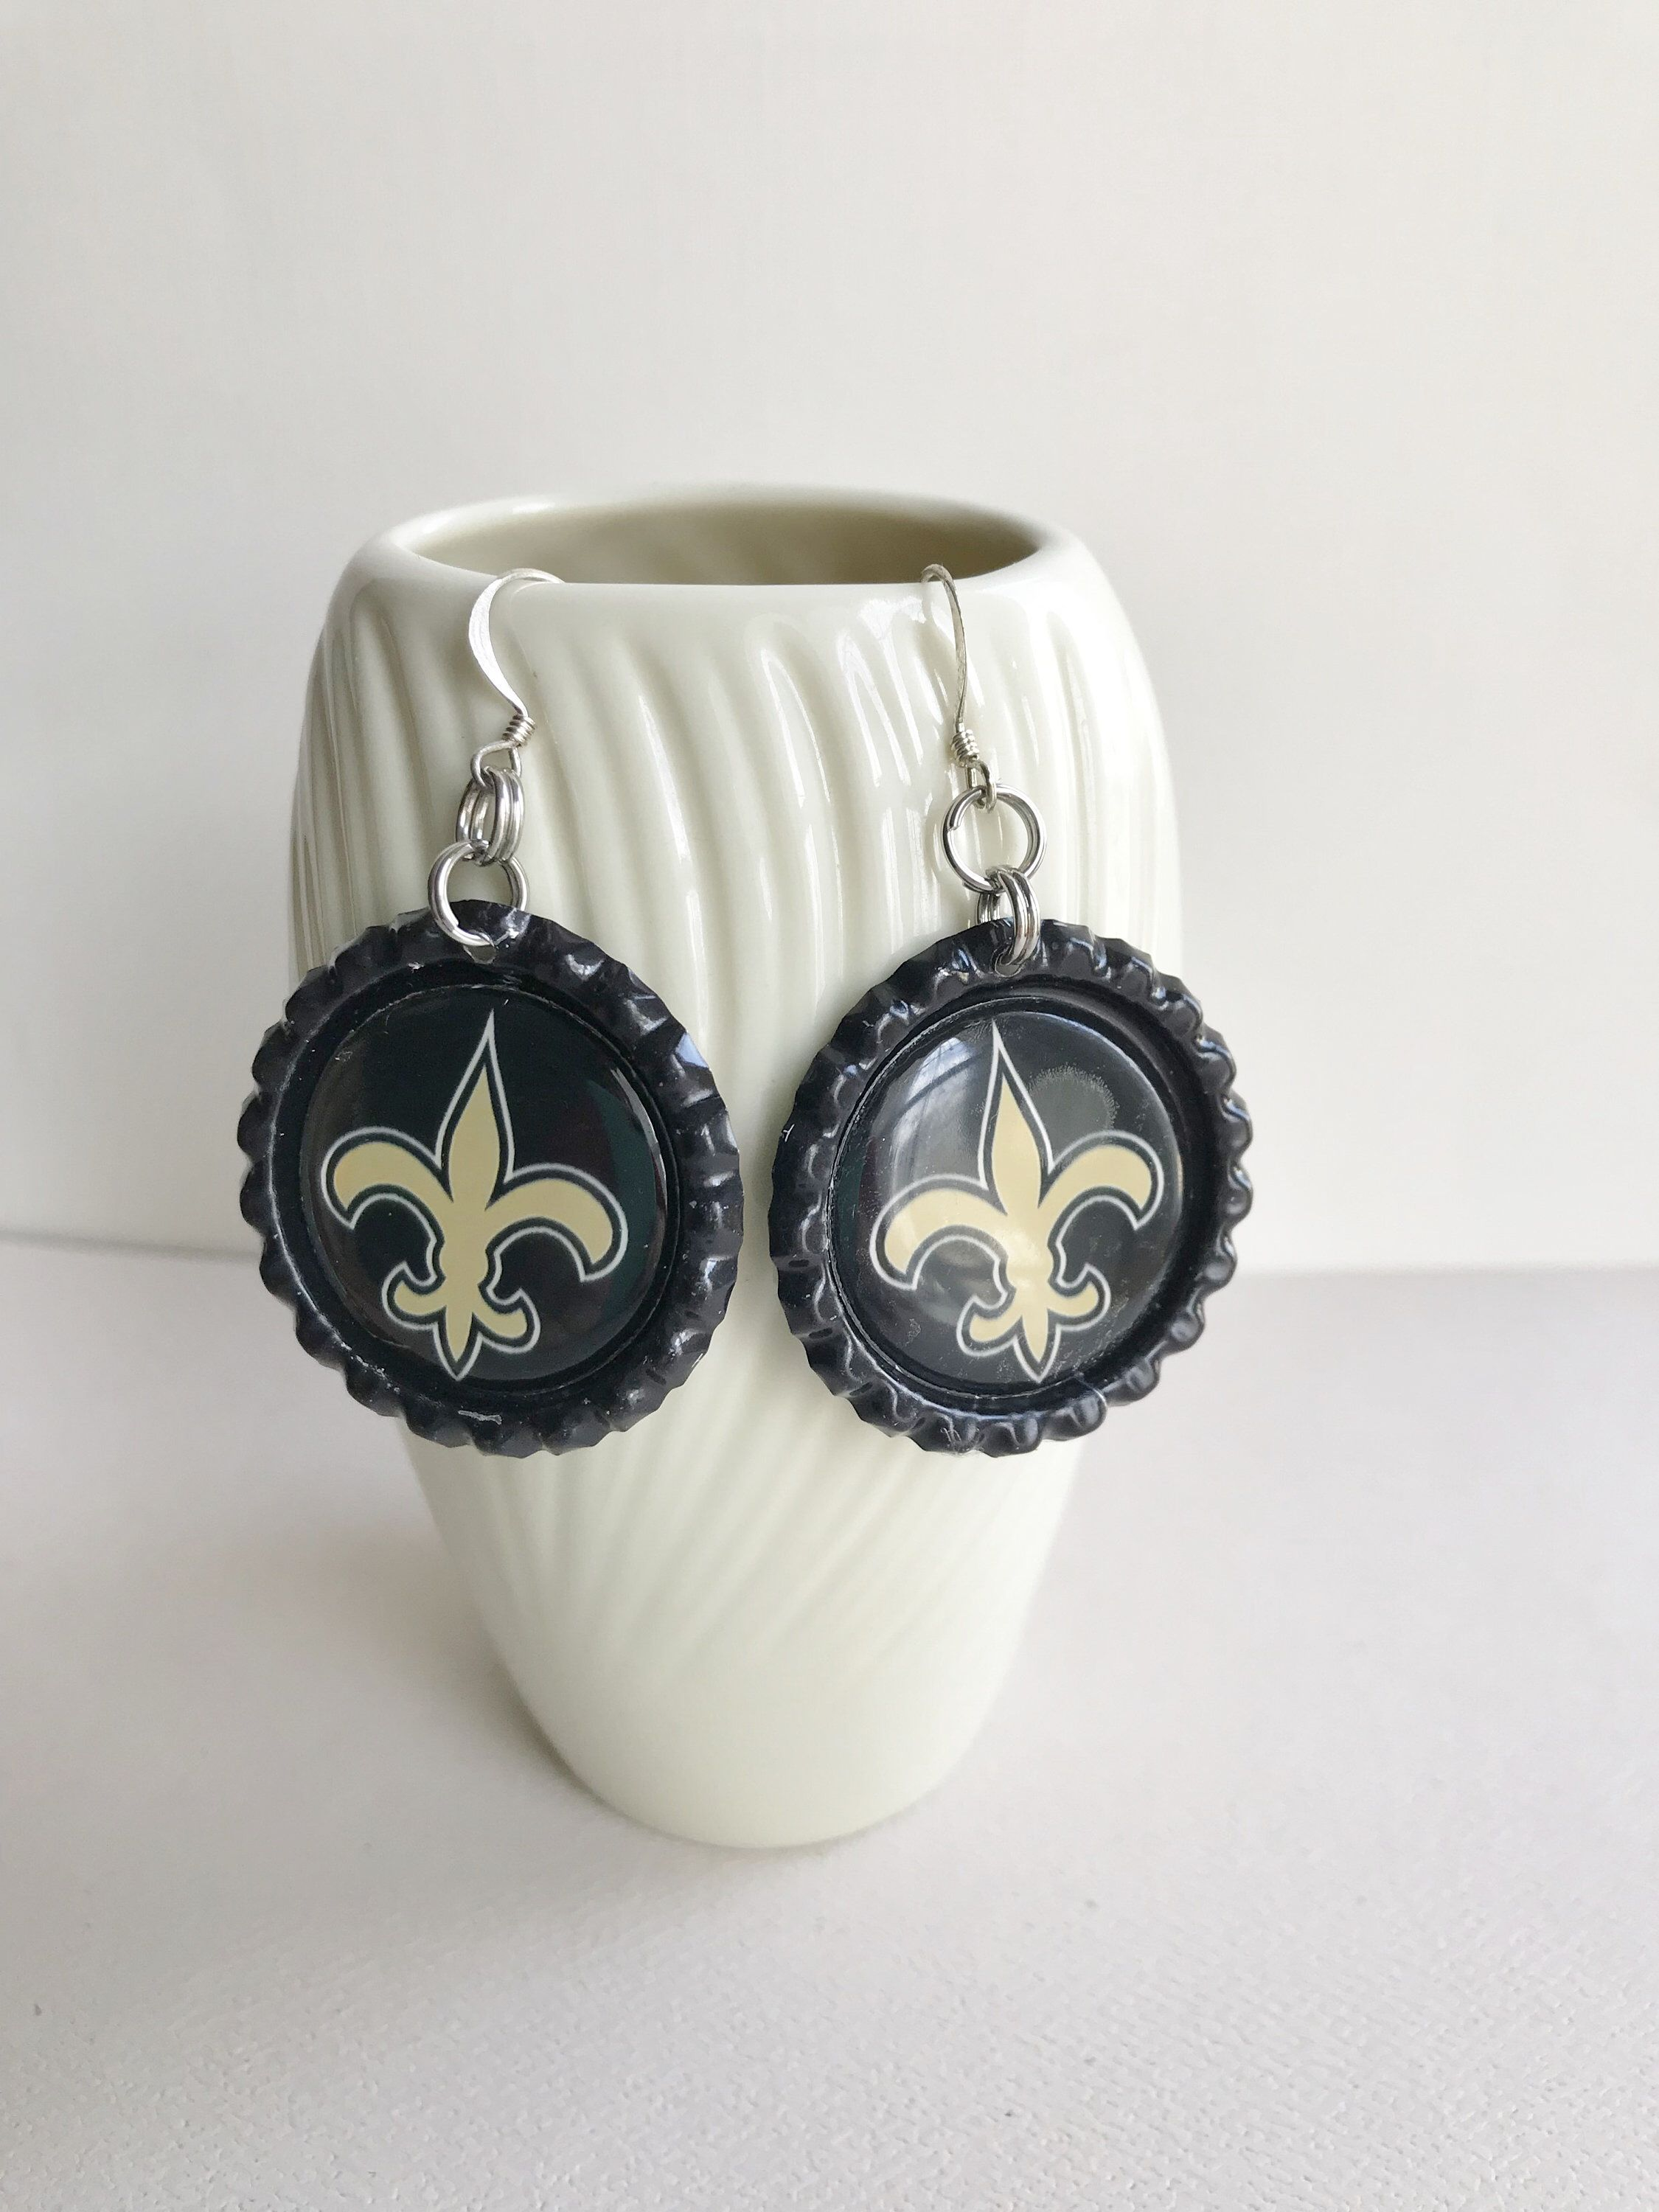 New Orleans Saints Jewerly : orleans, saints, jewerly, Excited, Share, #etsy, Shop:, Orleans, Saints, Earrings,, Jewelry,, Orleans…, Saint, Football, Gifts